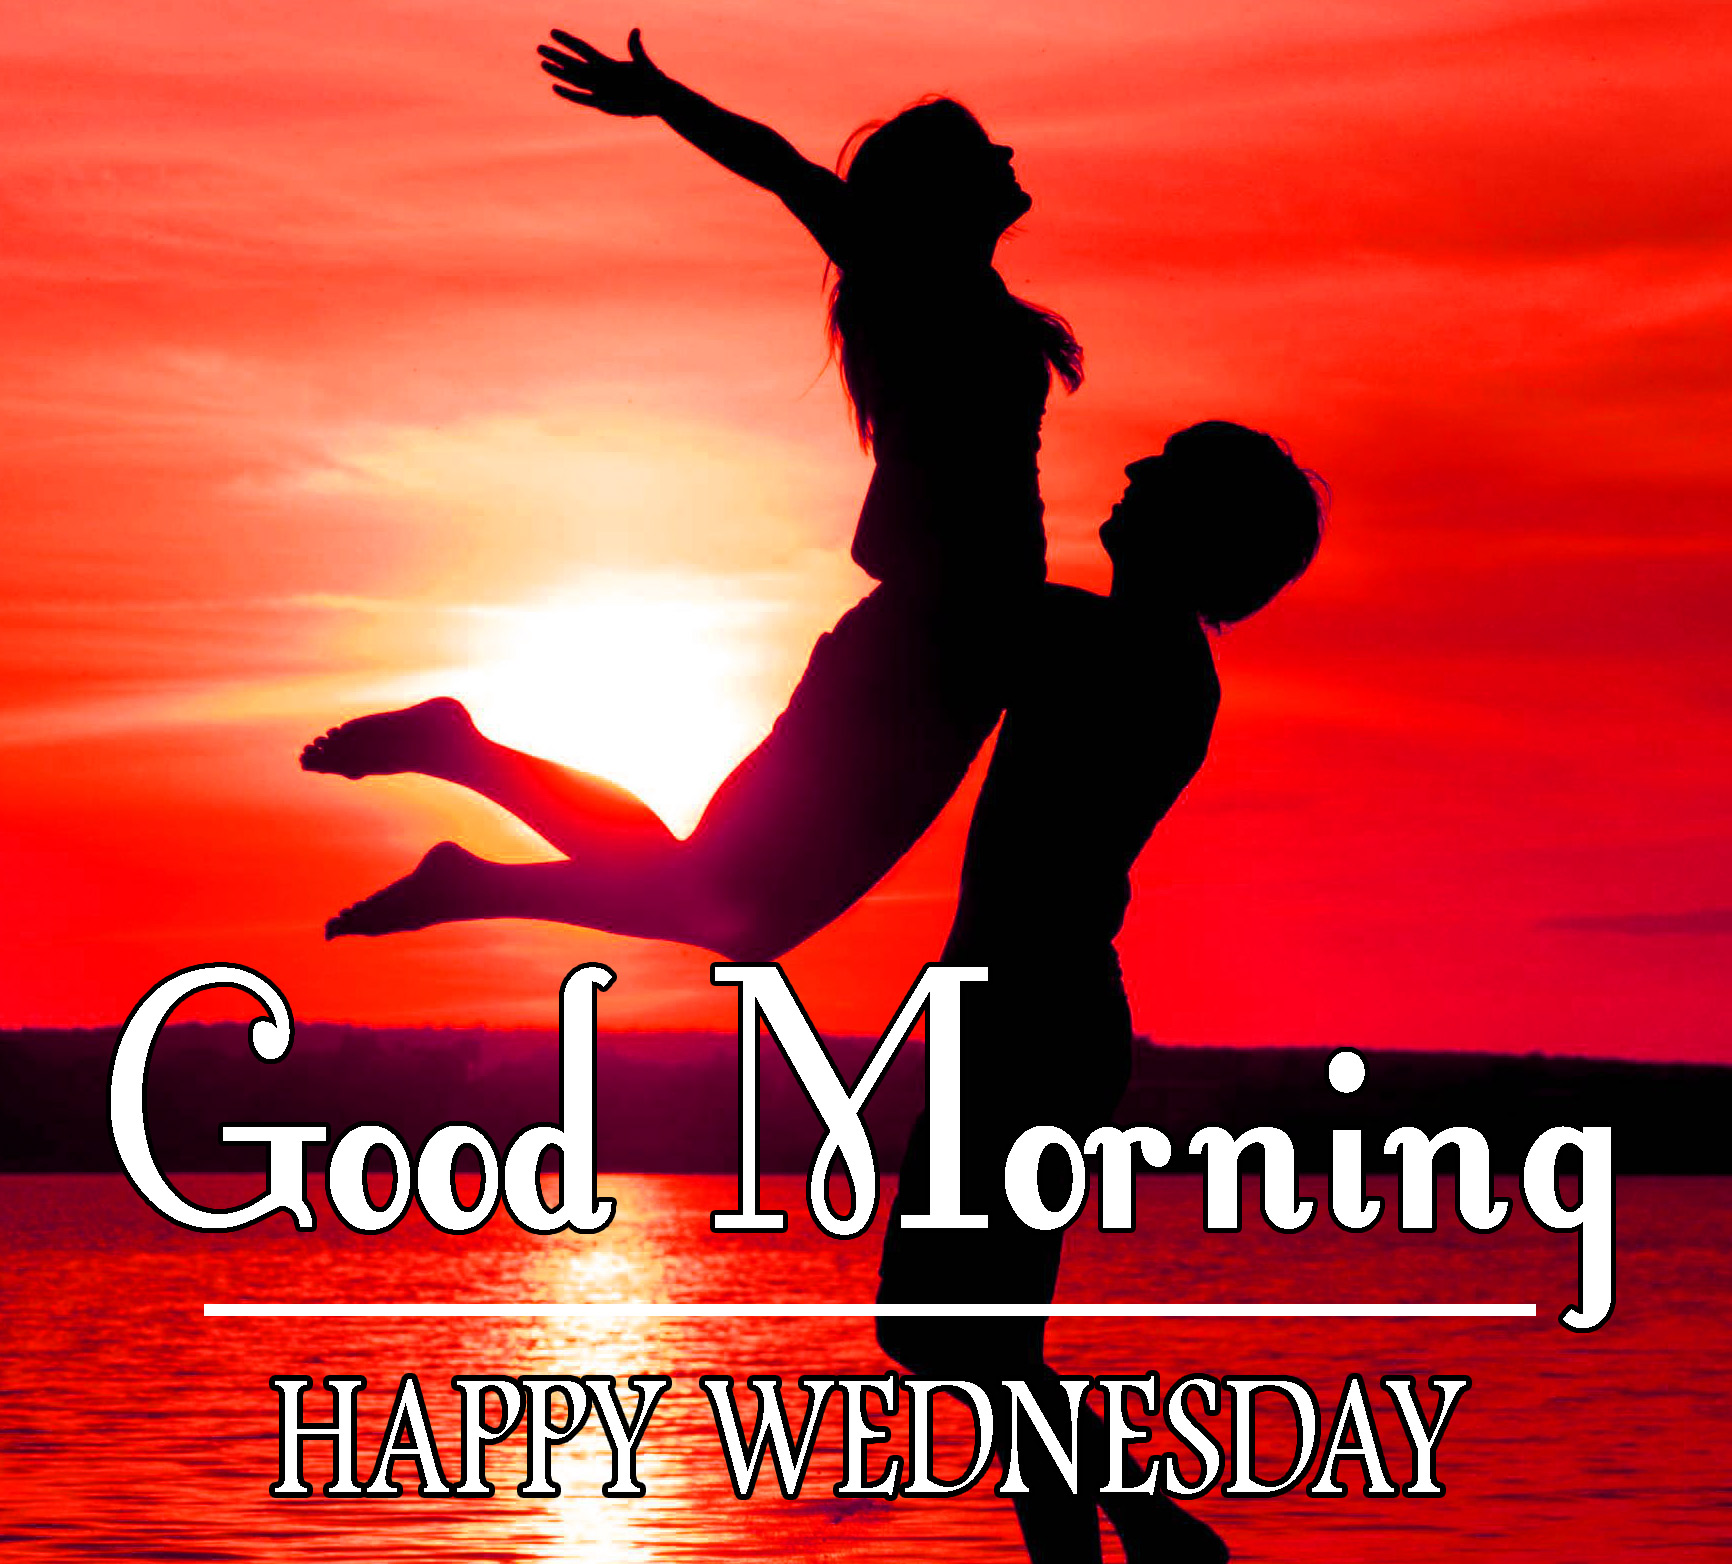 Good Morning Wednesday Images for Facebook / Whatsapp